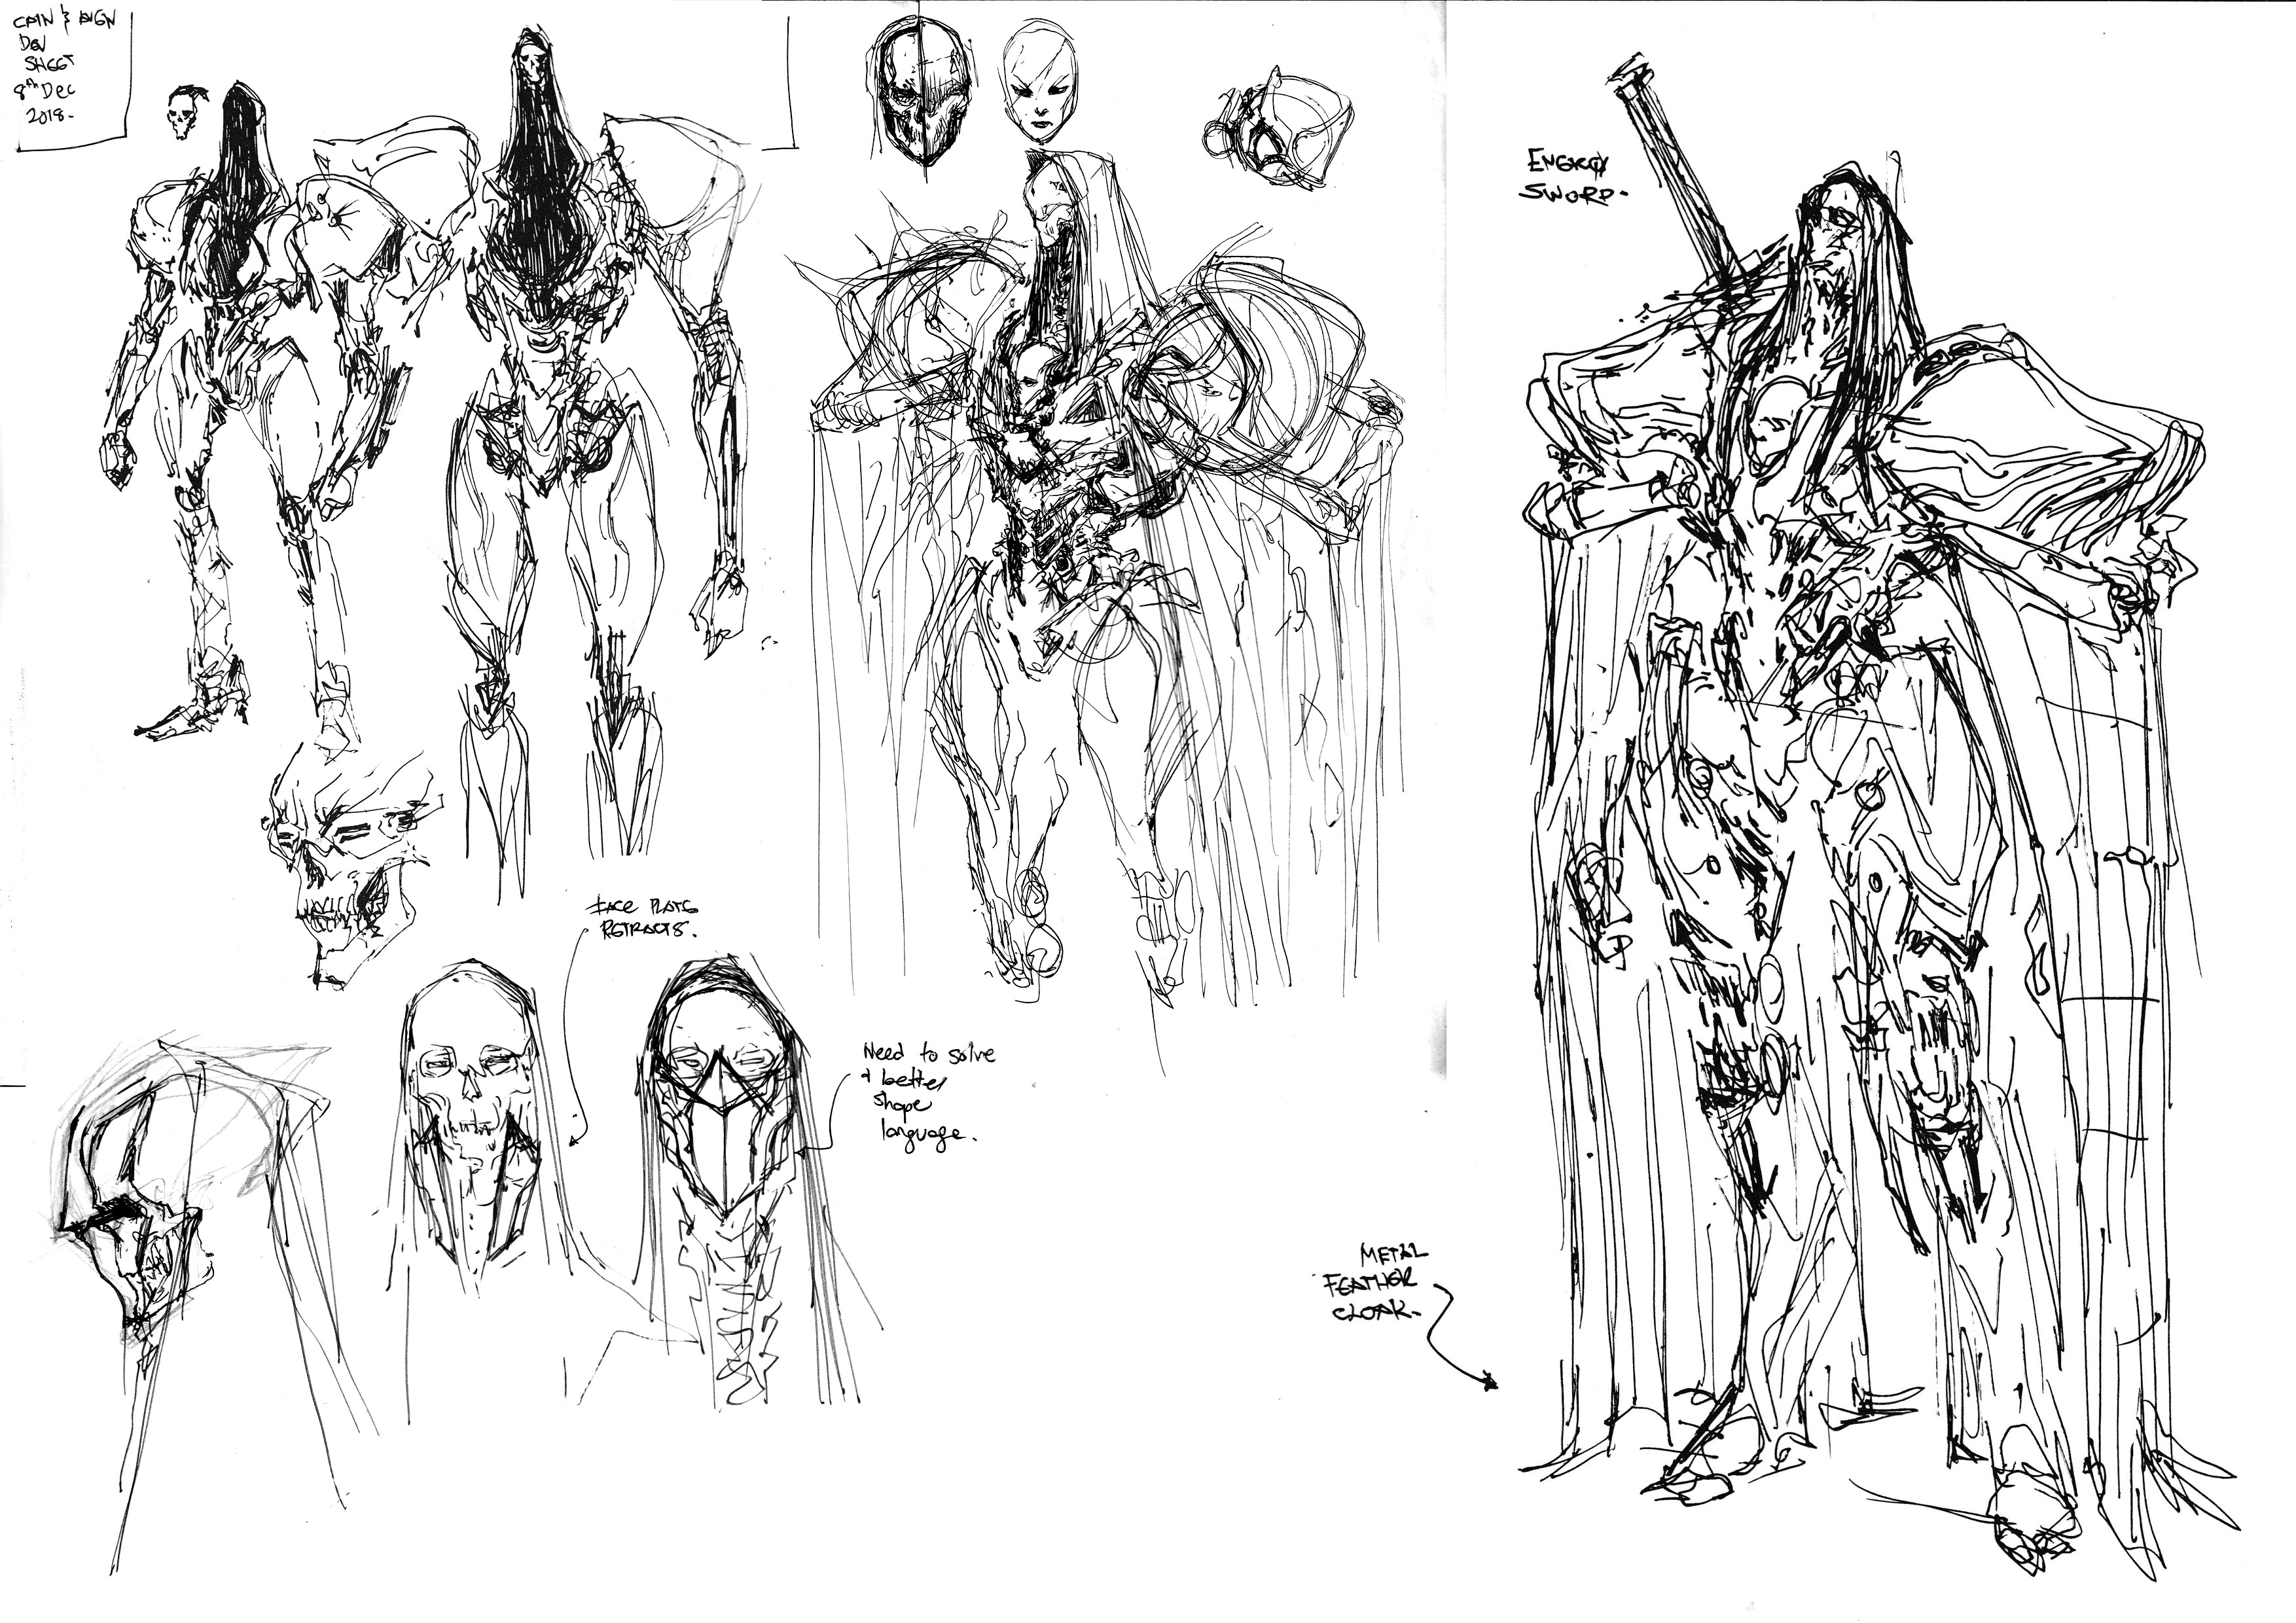 Early compilation of sketches and brainstorming i did